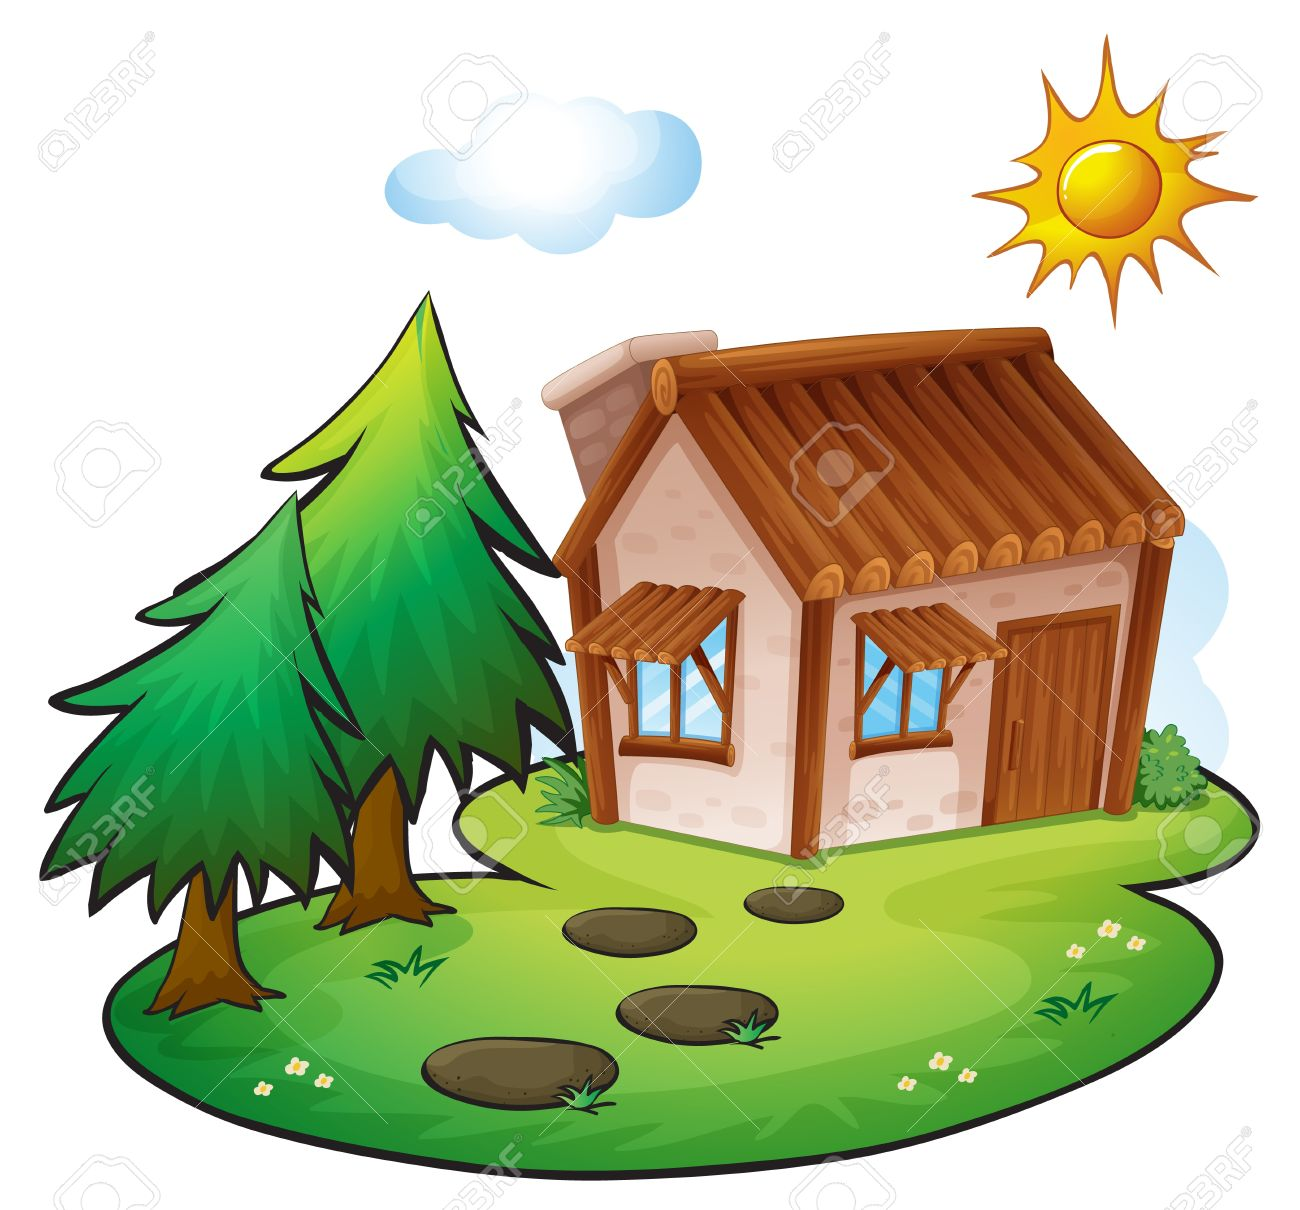 illustration of a house in a beautiful nature Stock Vector - 16319700